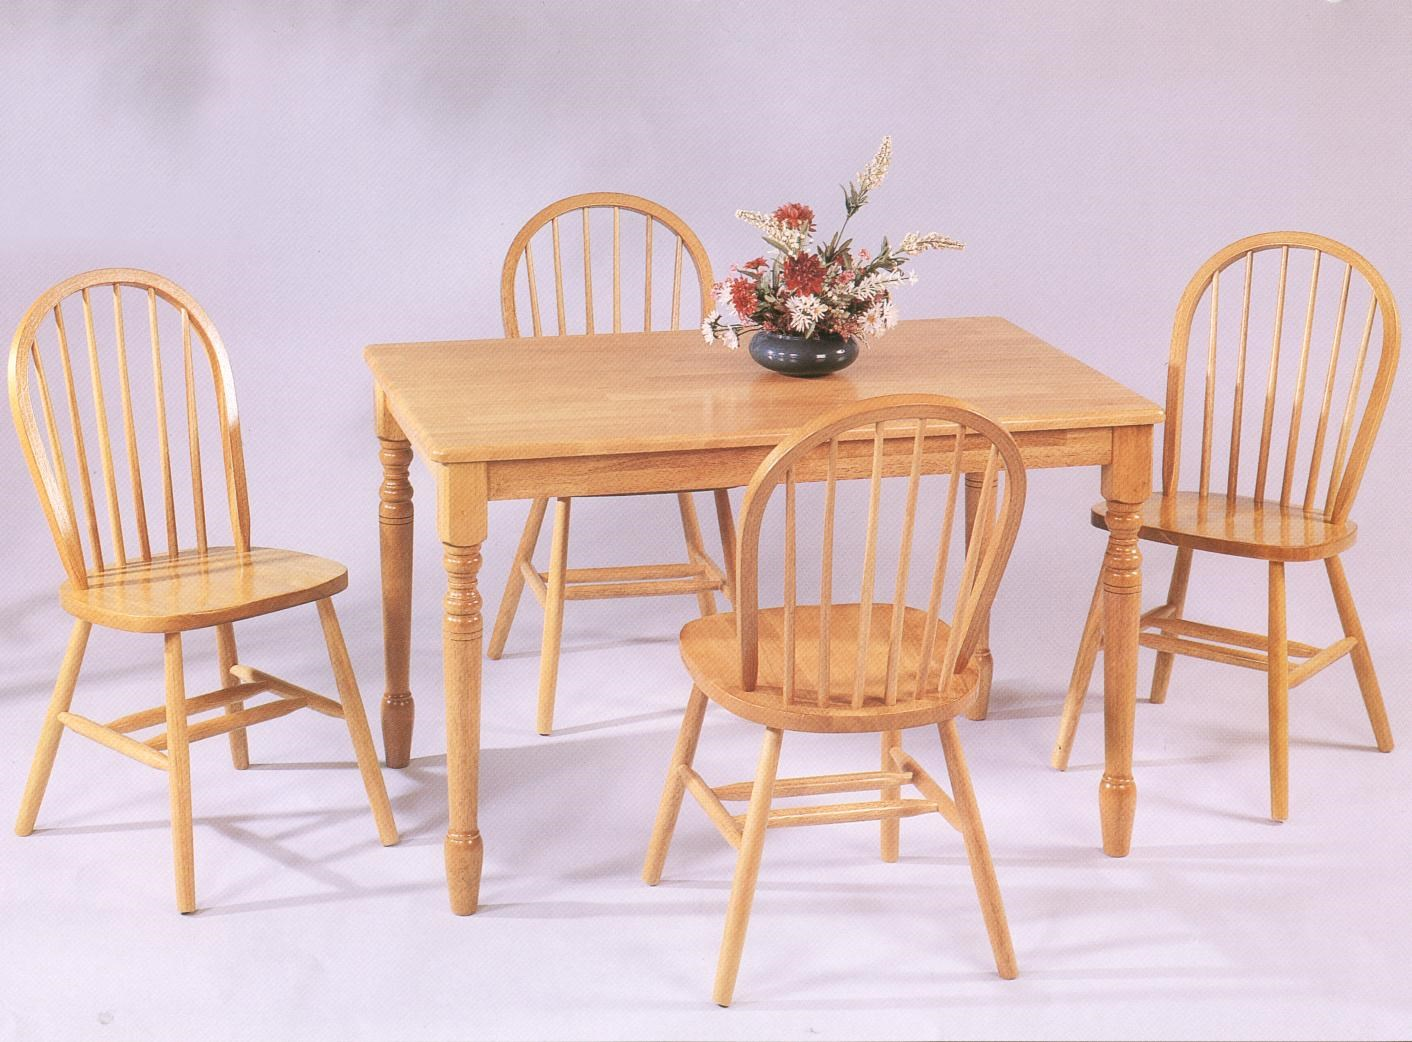 Superieur Amesbury Chair Farmhouse And Traditional Windsor Rectangular Leg Table W/ 4  Side Chairs